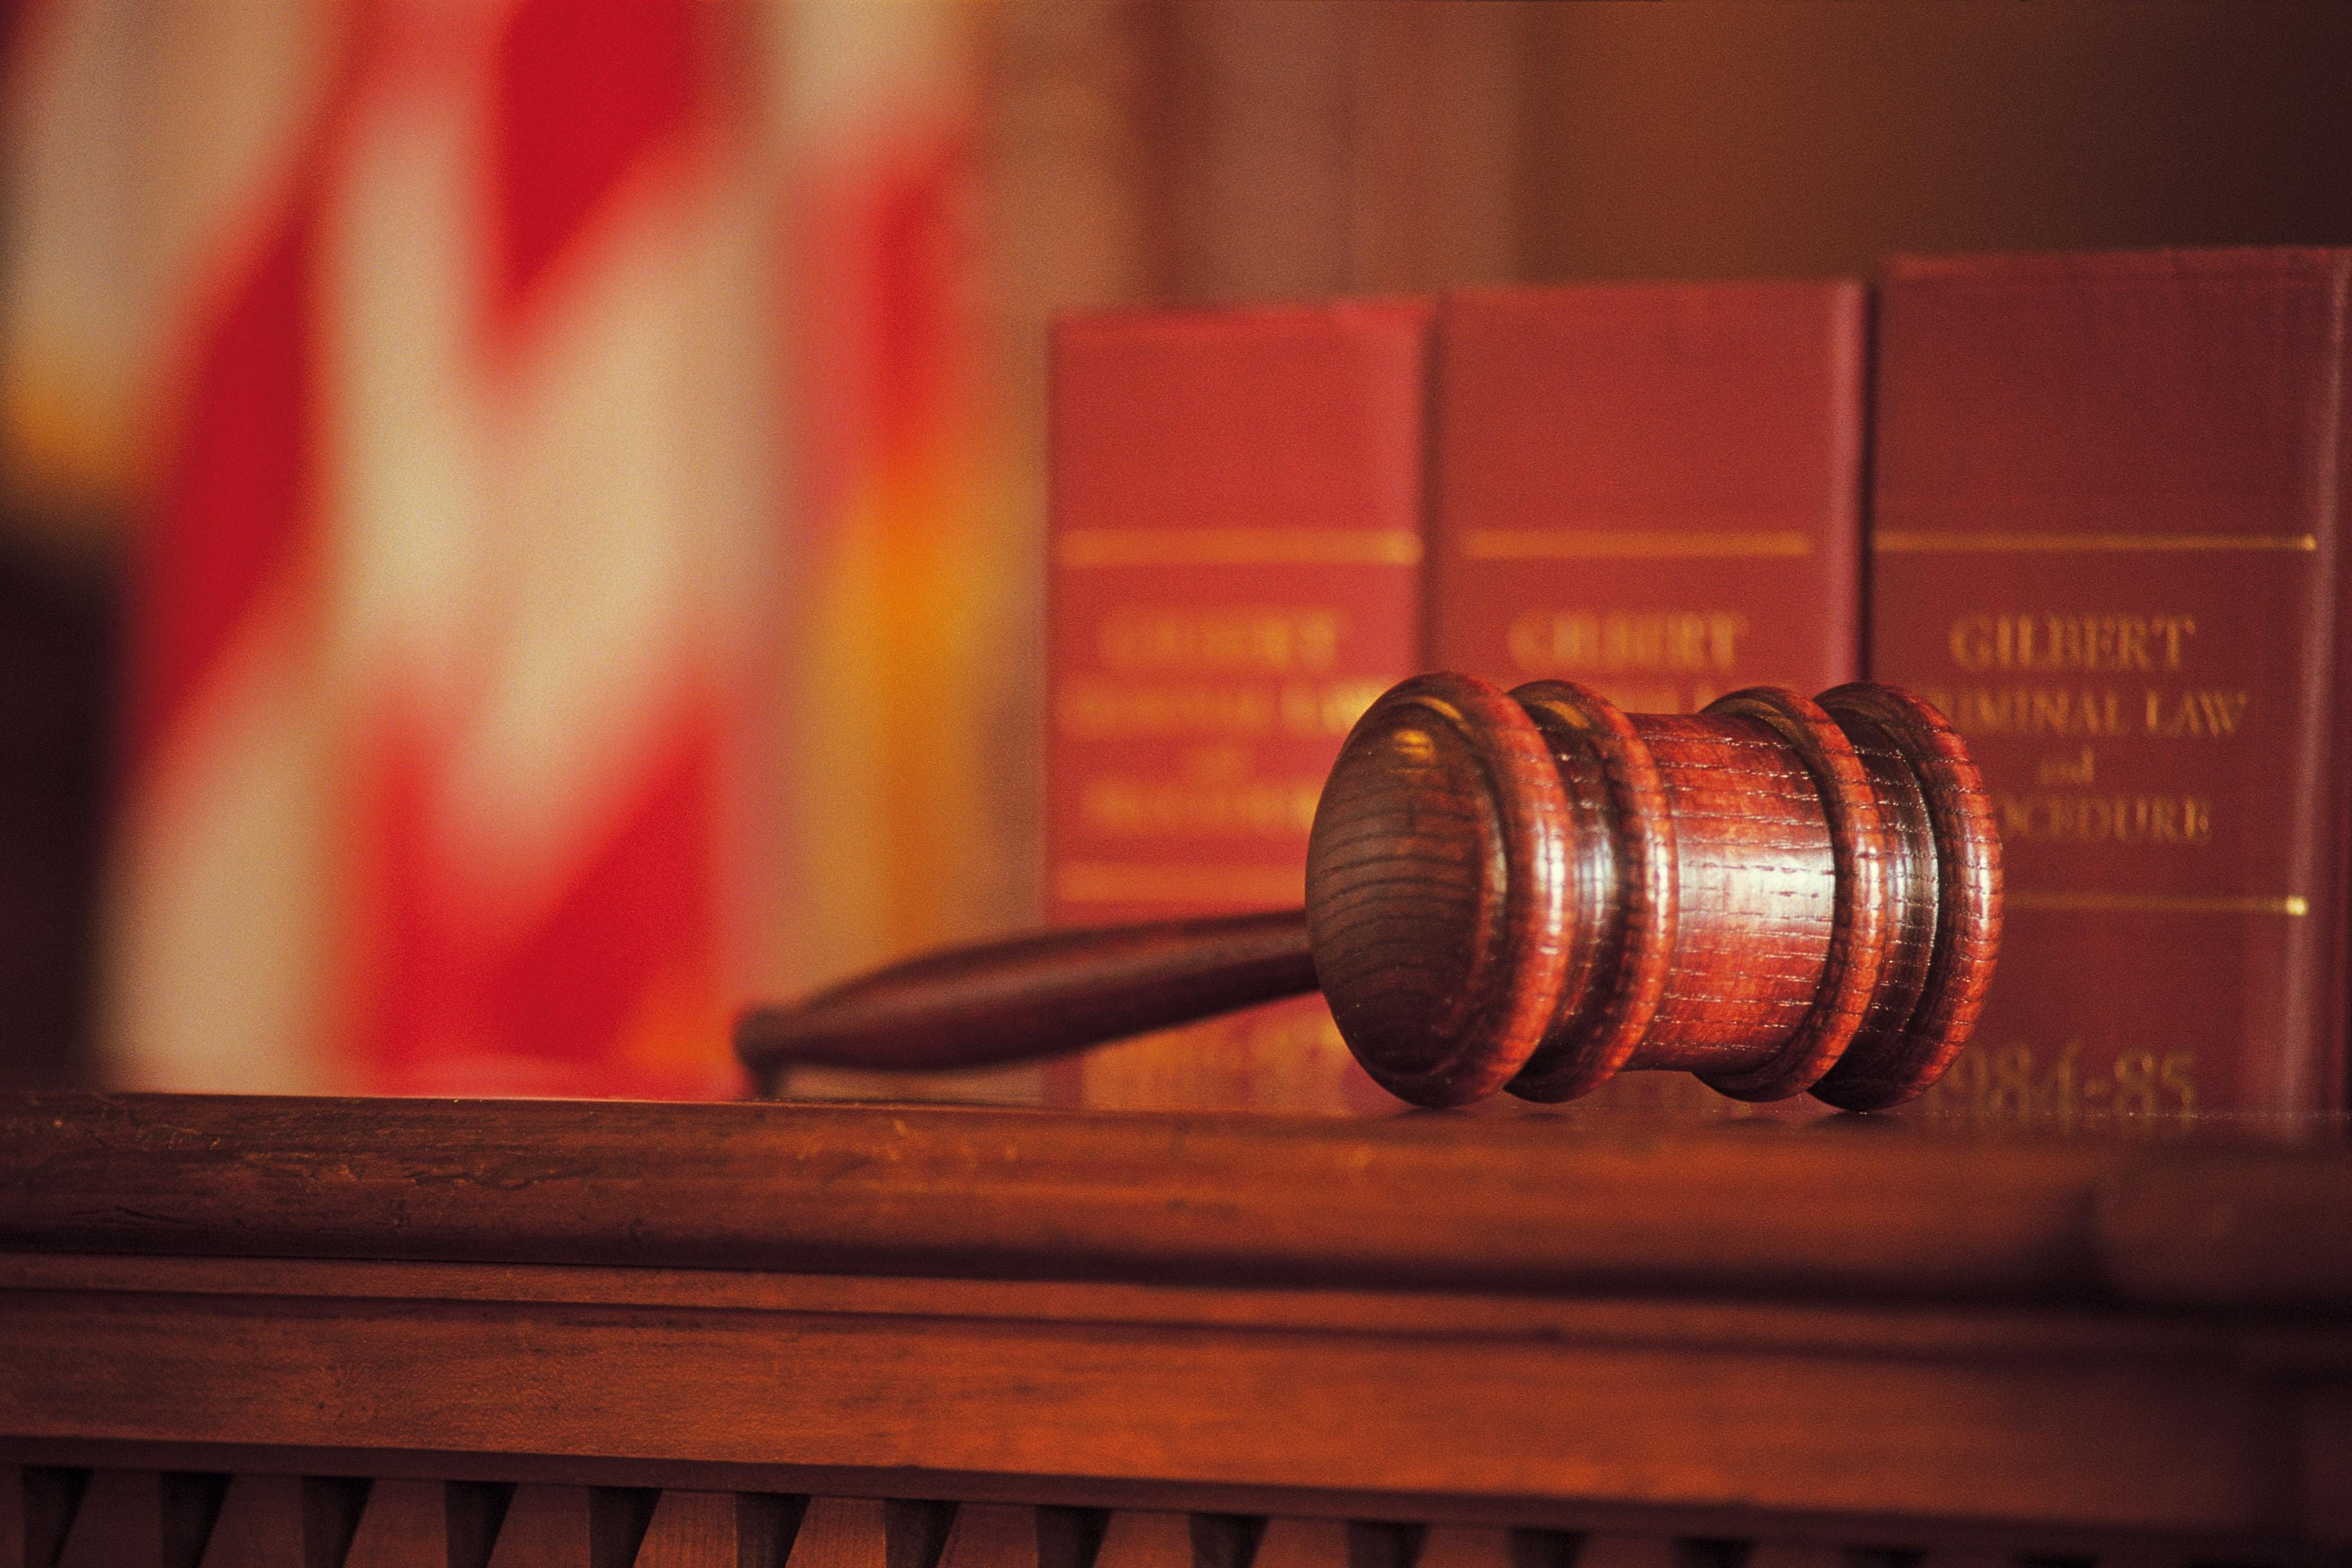 2 sentenced to federal prison for cocaine conspiracy   Clarion Ledger